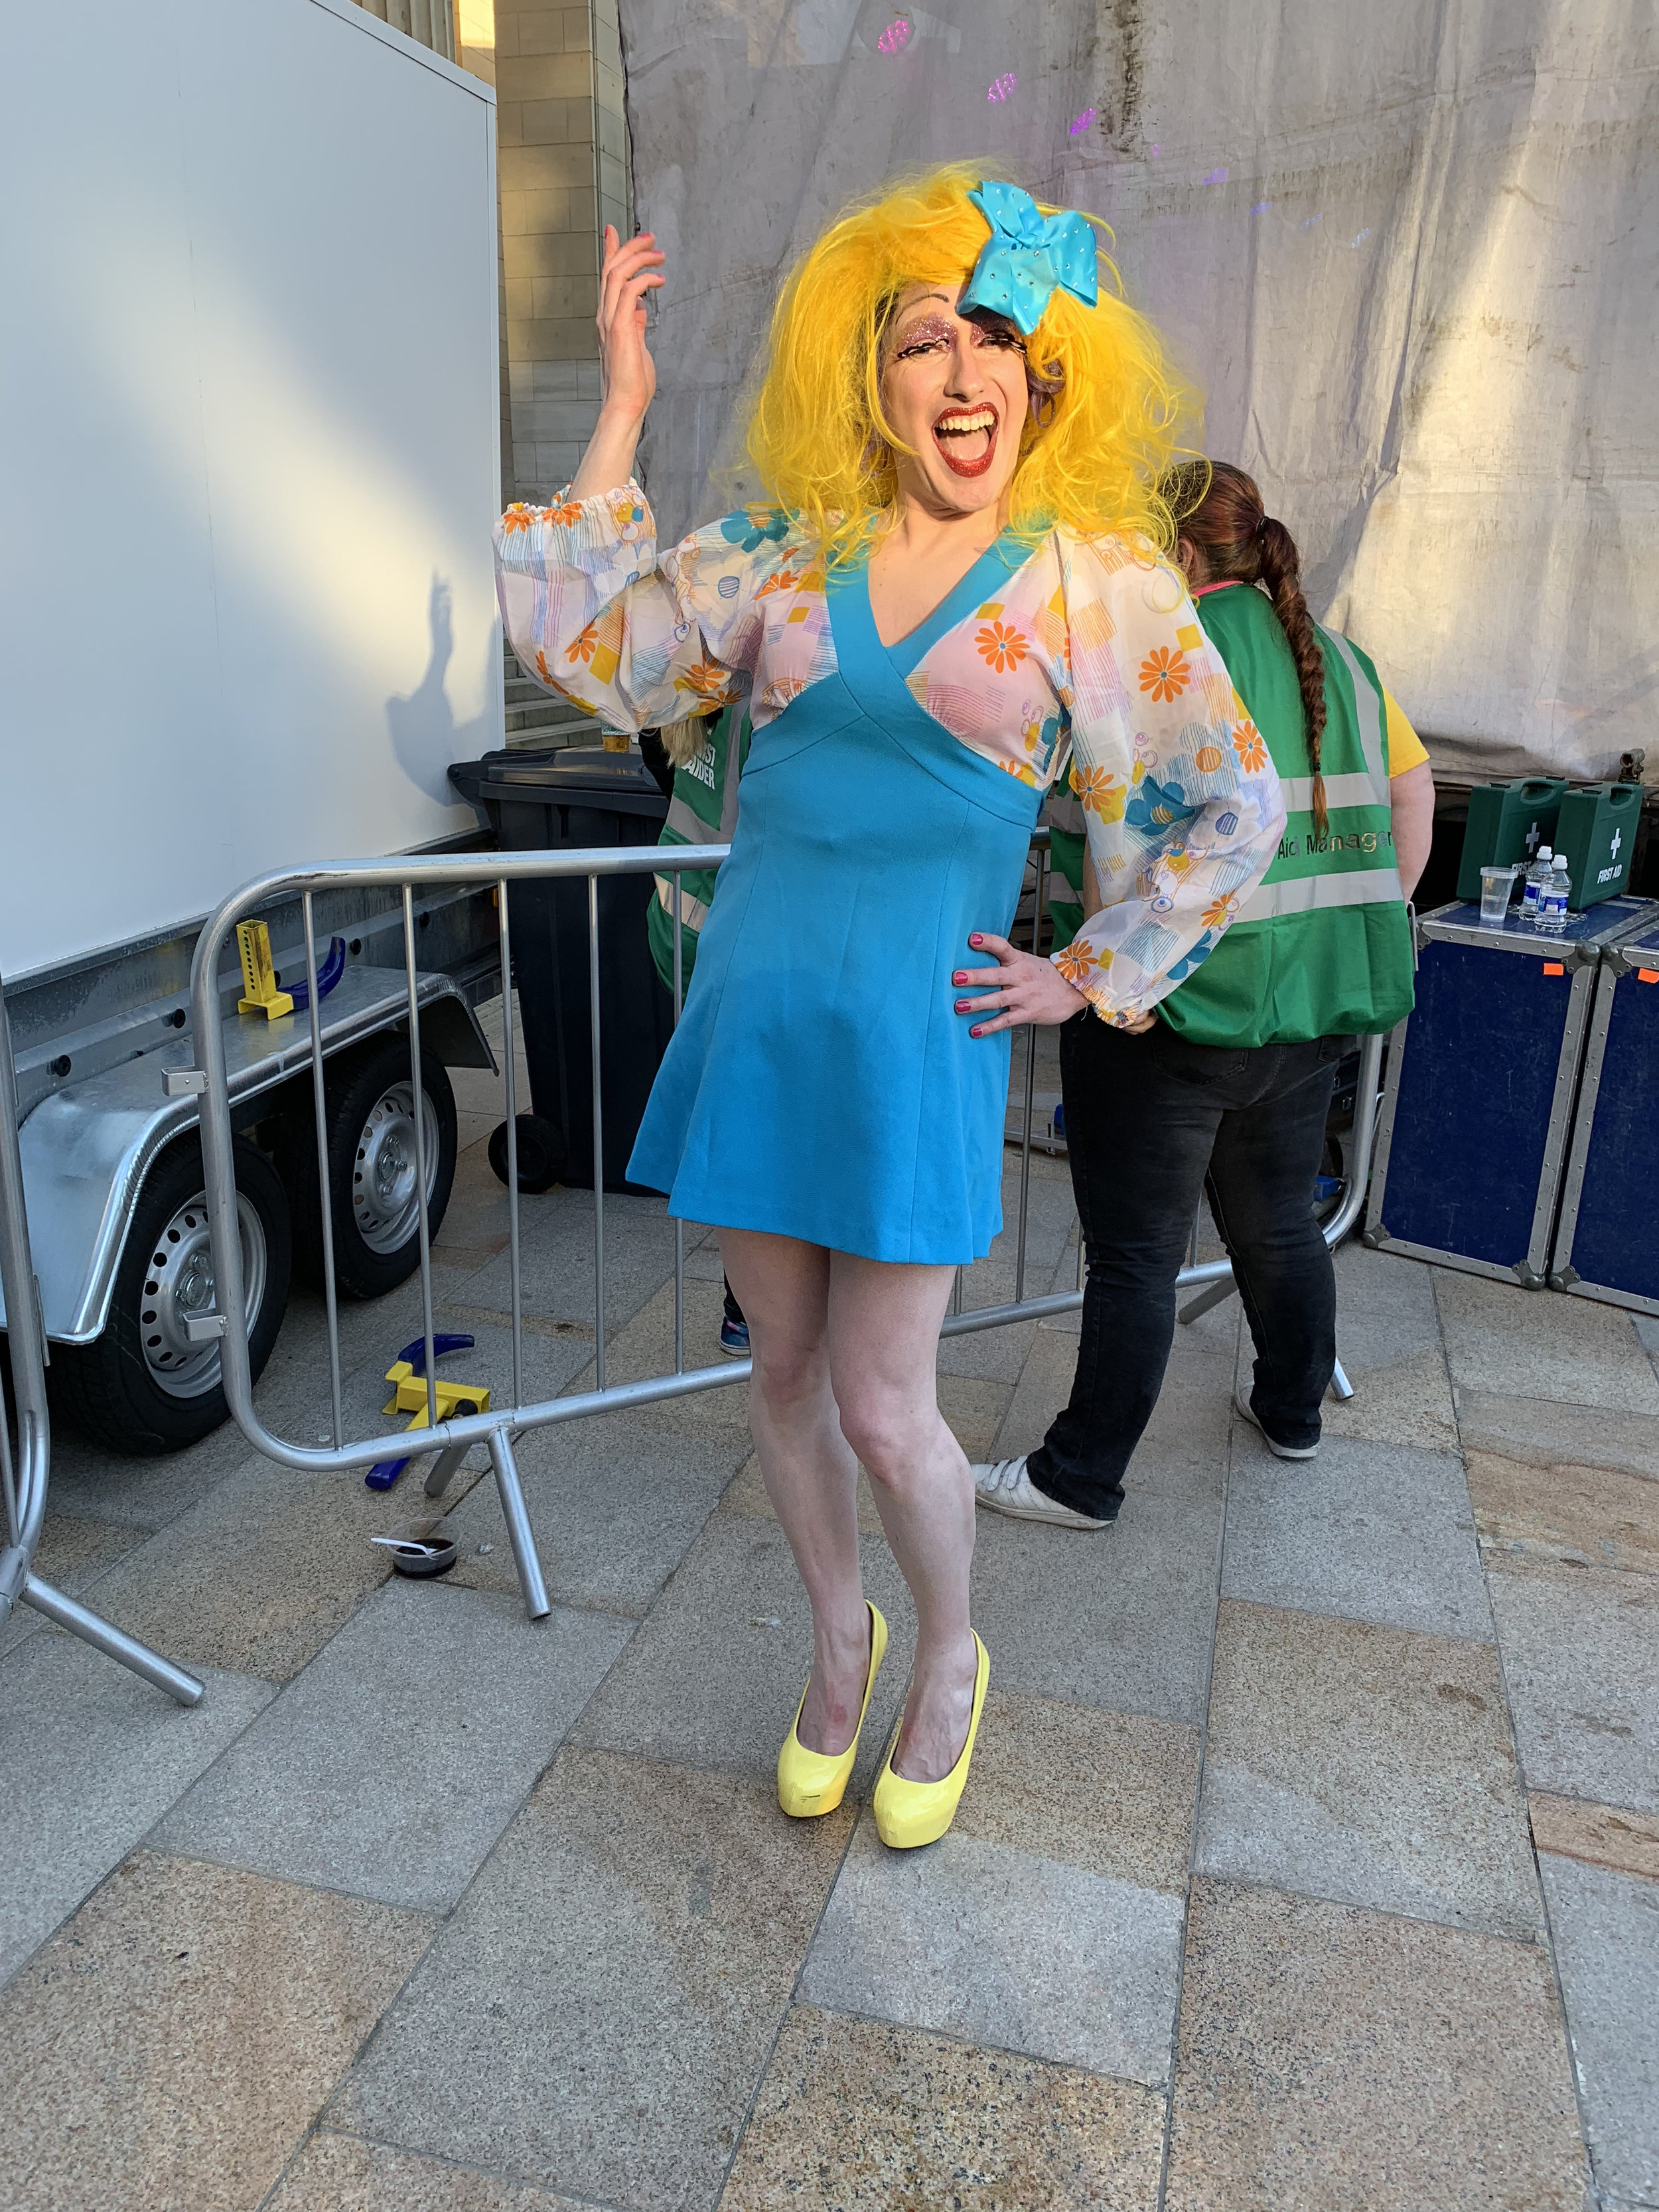 slay that stage at dundee pride - We are on the hunt for performers for the main stage at Dundee Pride. If you can dance, sing, slay the house down, then get in touch!APPLICATIONS ARE NOW CLOSED. APPLICANTS WILL RECEIVE A DECISION BY 28TH JUNE.